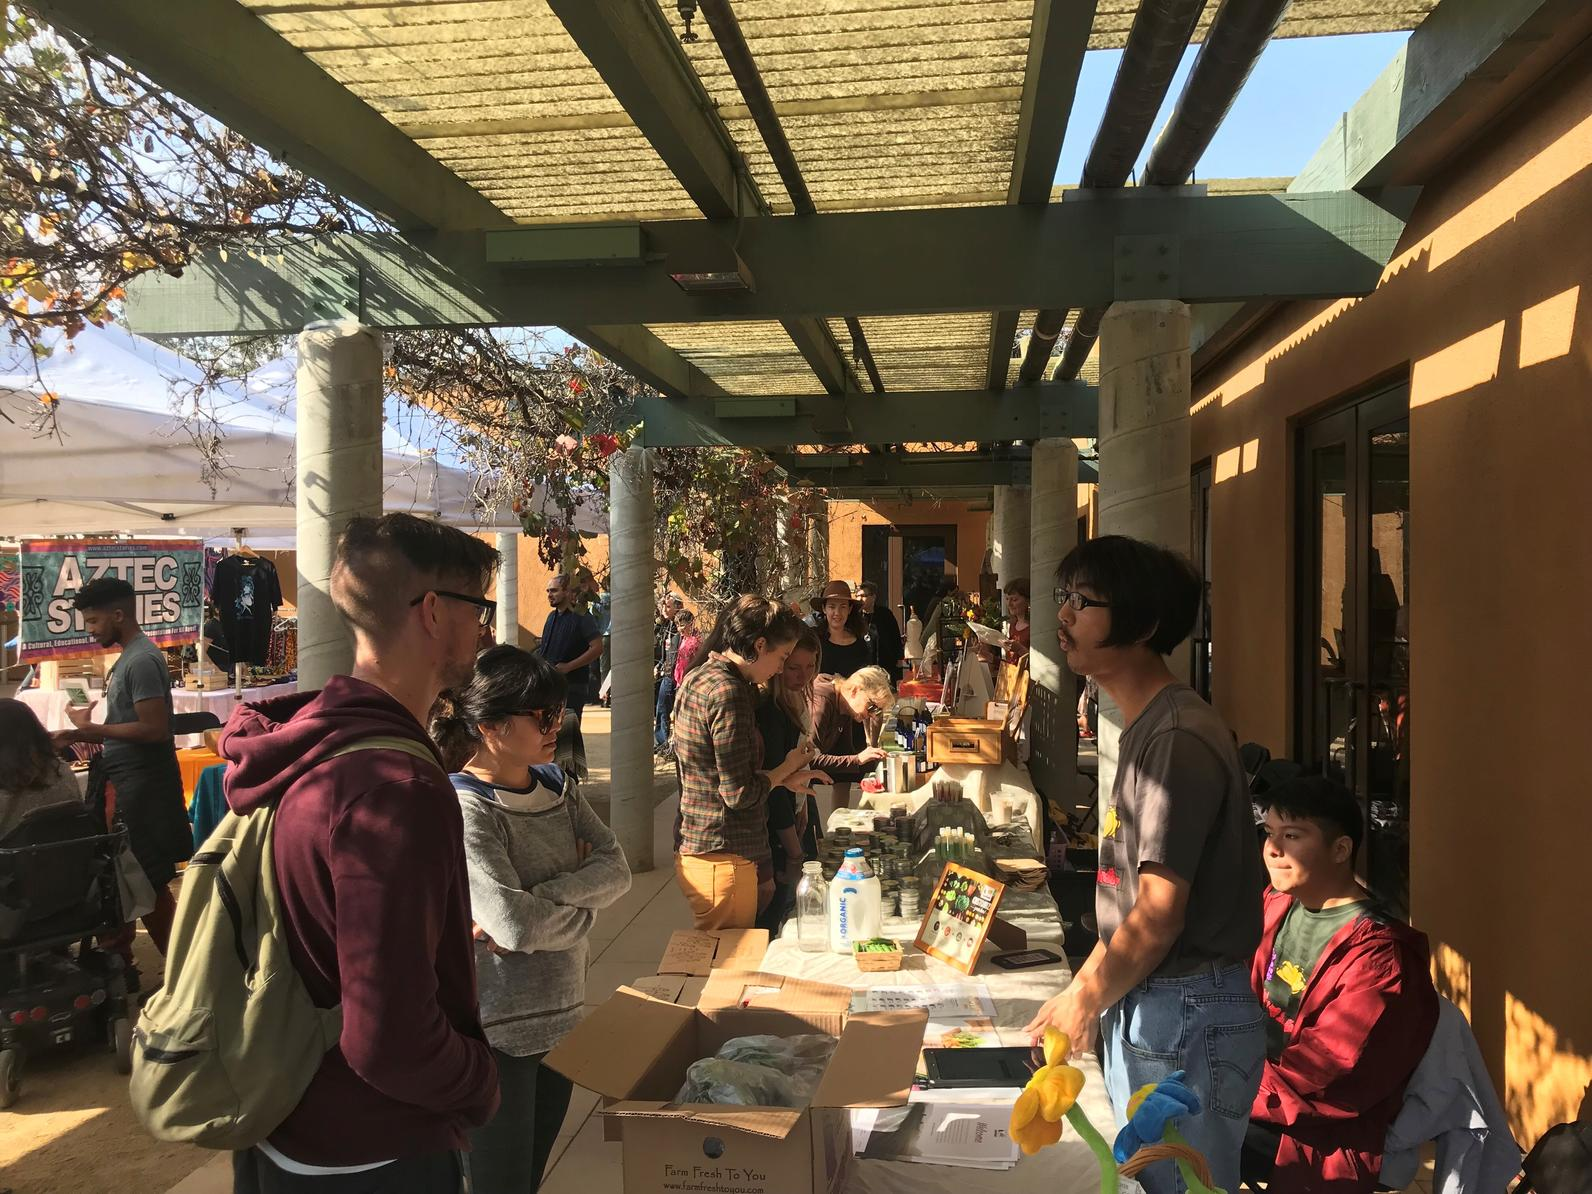 Visitors check out vendor stands at the Arroyo Seco Marketplace